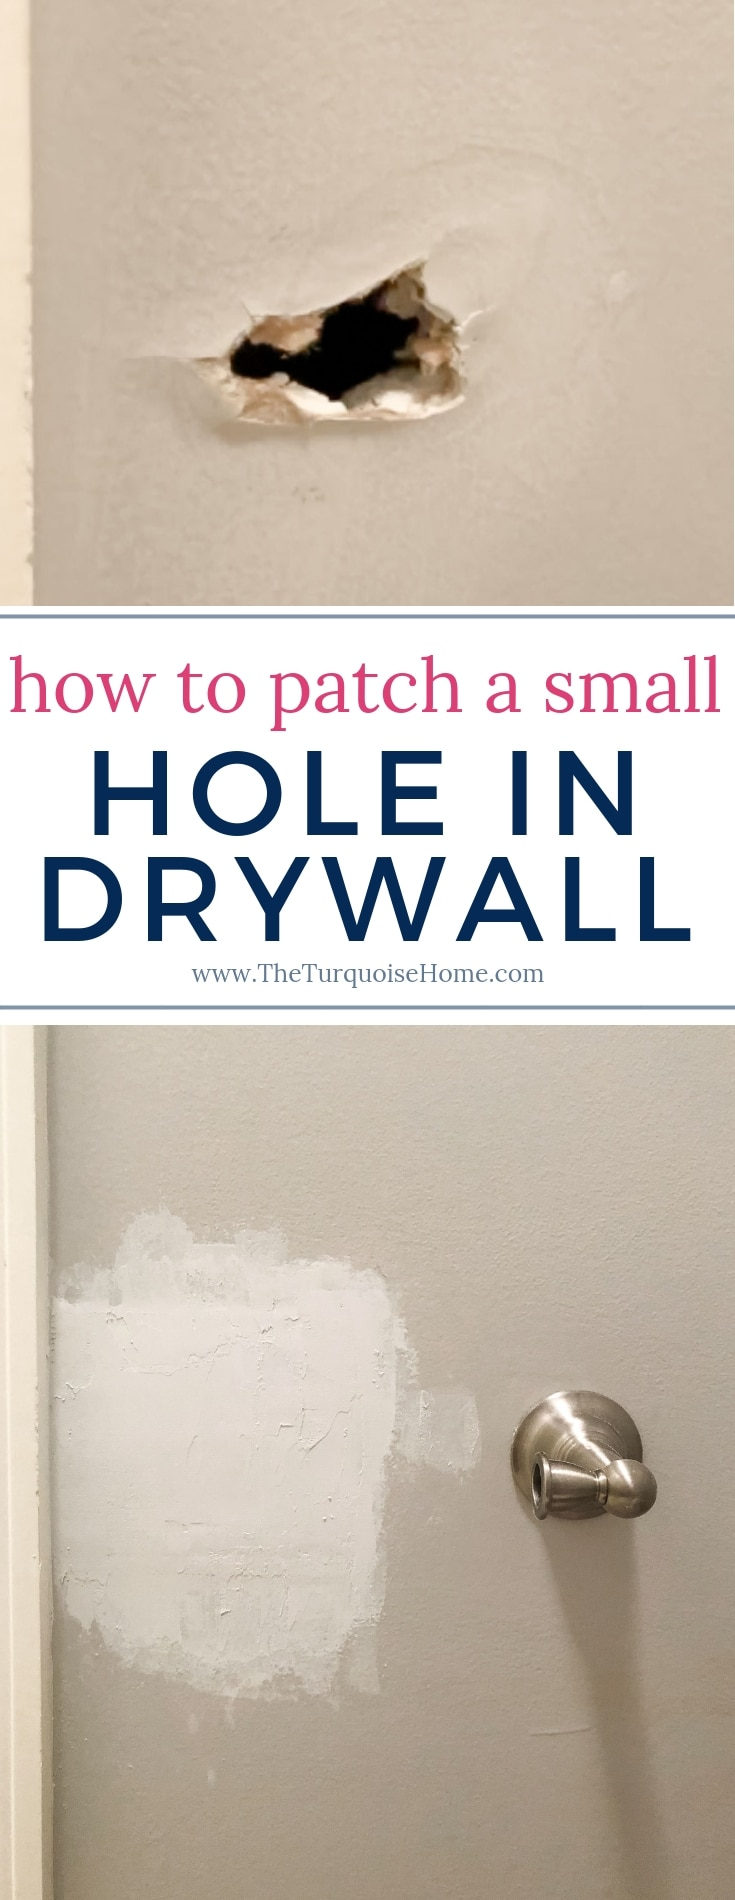 How to Patch a Small Hole in Drywall >> with a drywall repair kit